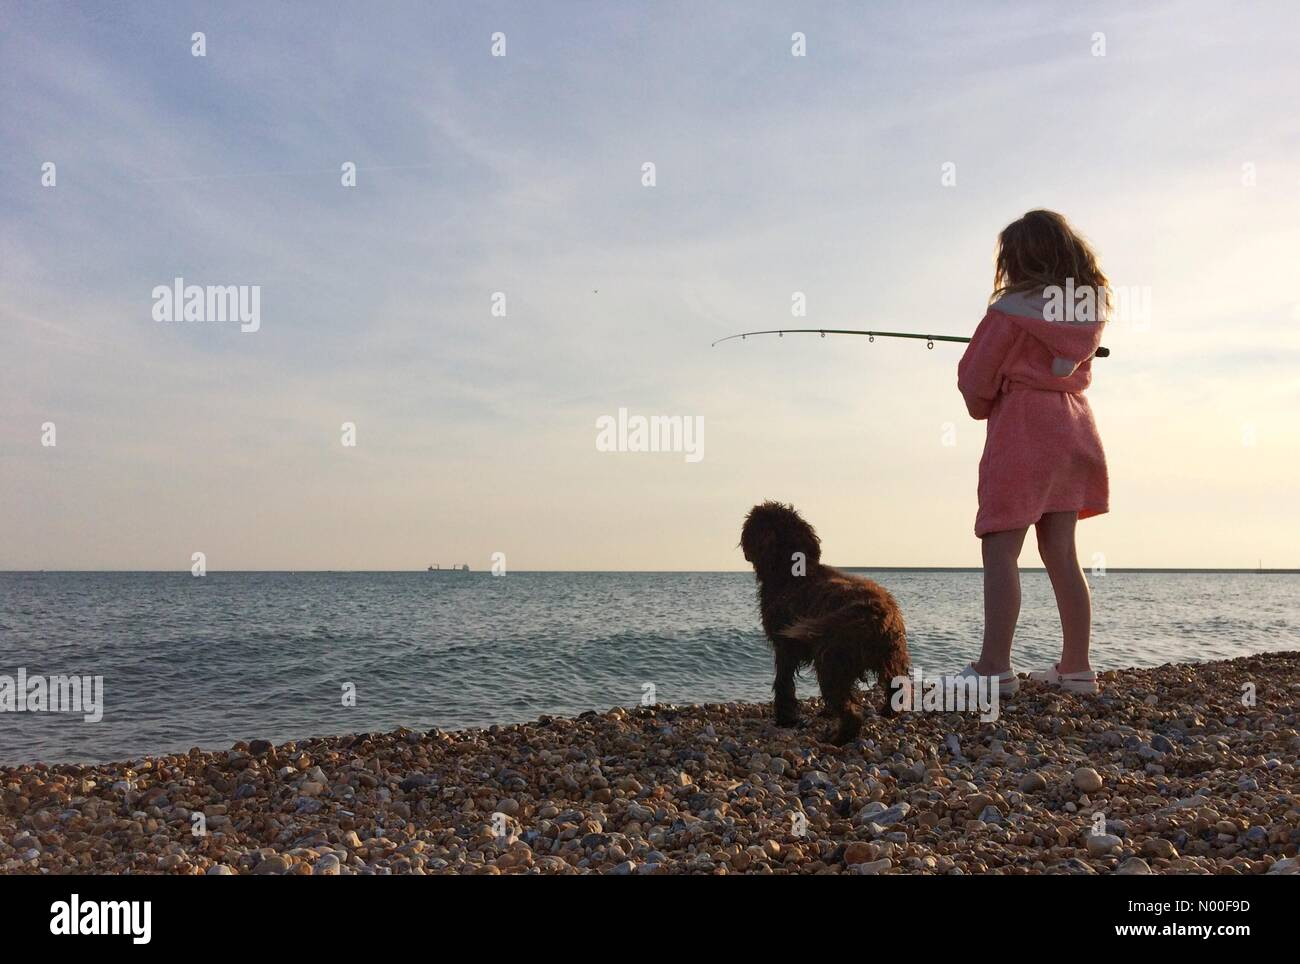 Seaford, East Sussex. 20th June 2017. A girl in a pink dressing gown fishing on the beach with her dog at the end - Stock Image